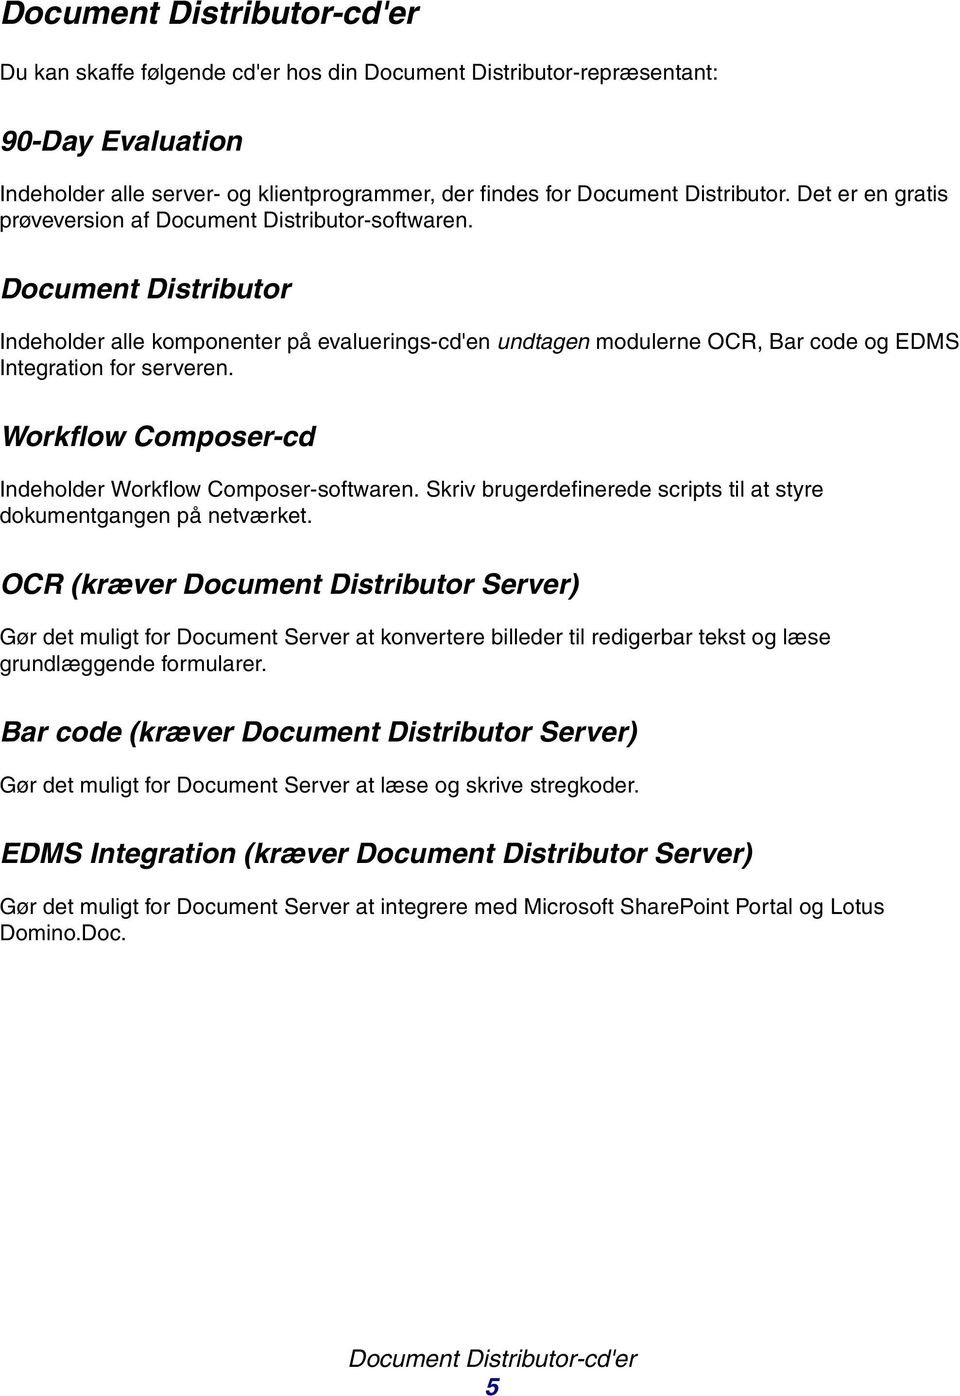 Document Distributor Indeholder alle komponenter på evaluerings-cd'en undtagen modulerne OCR, Bar code og EDMS Integration for serveren. Workflow Composer-cd Indeholder Workflow Composer-softwaren.